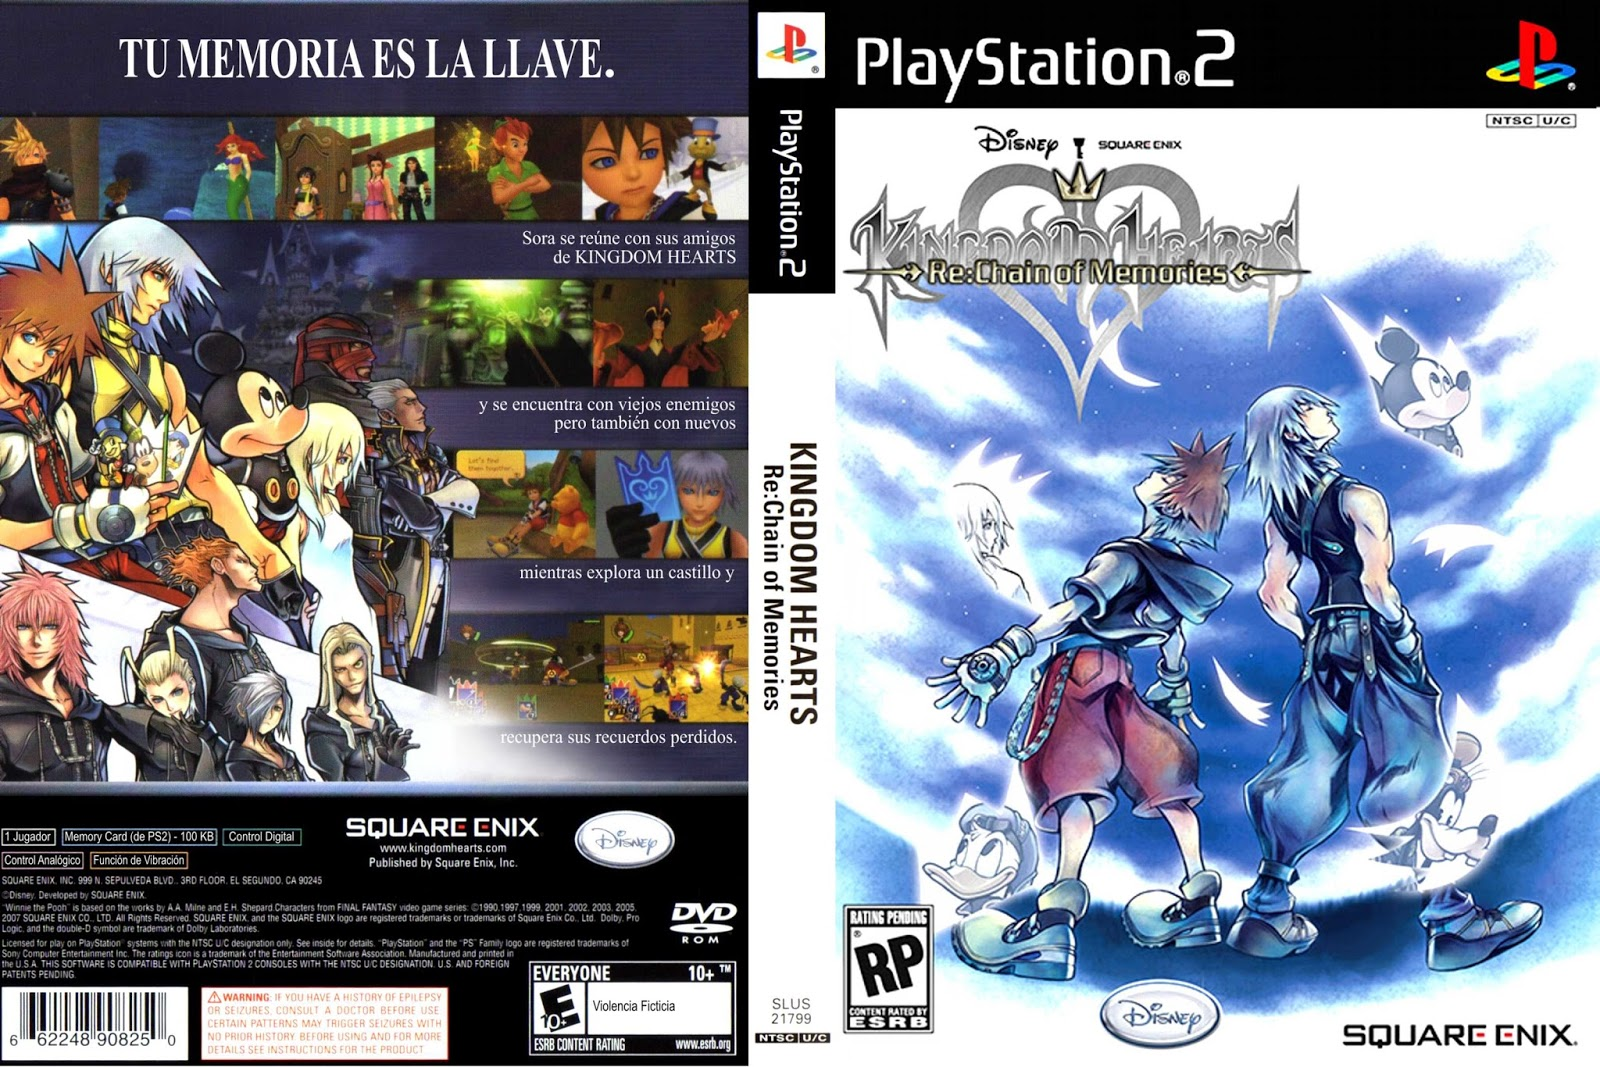 ps2 rom package